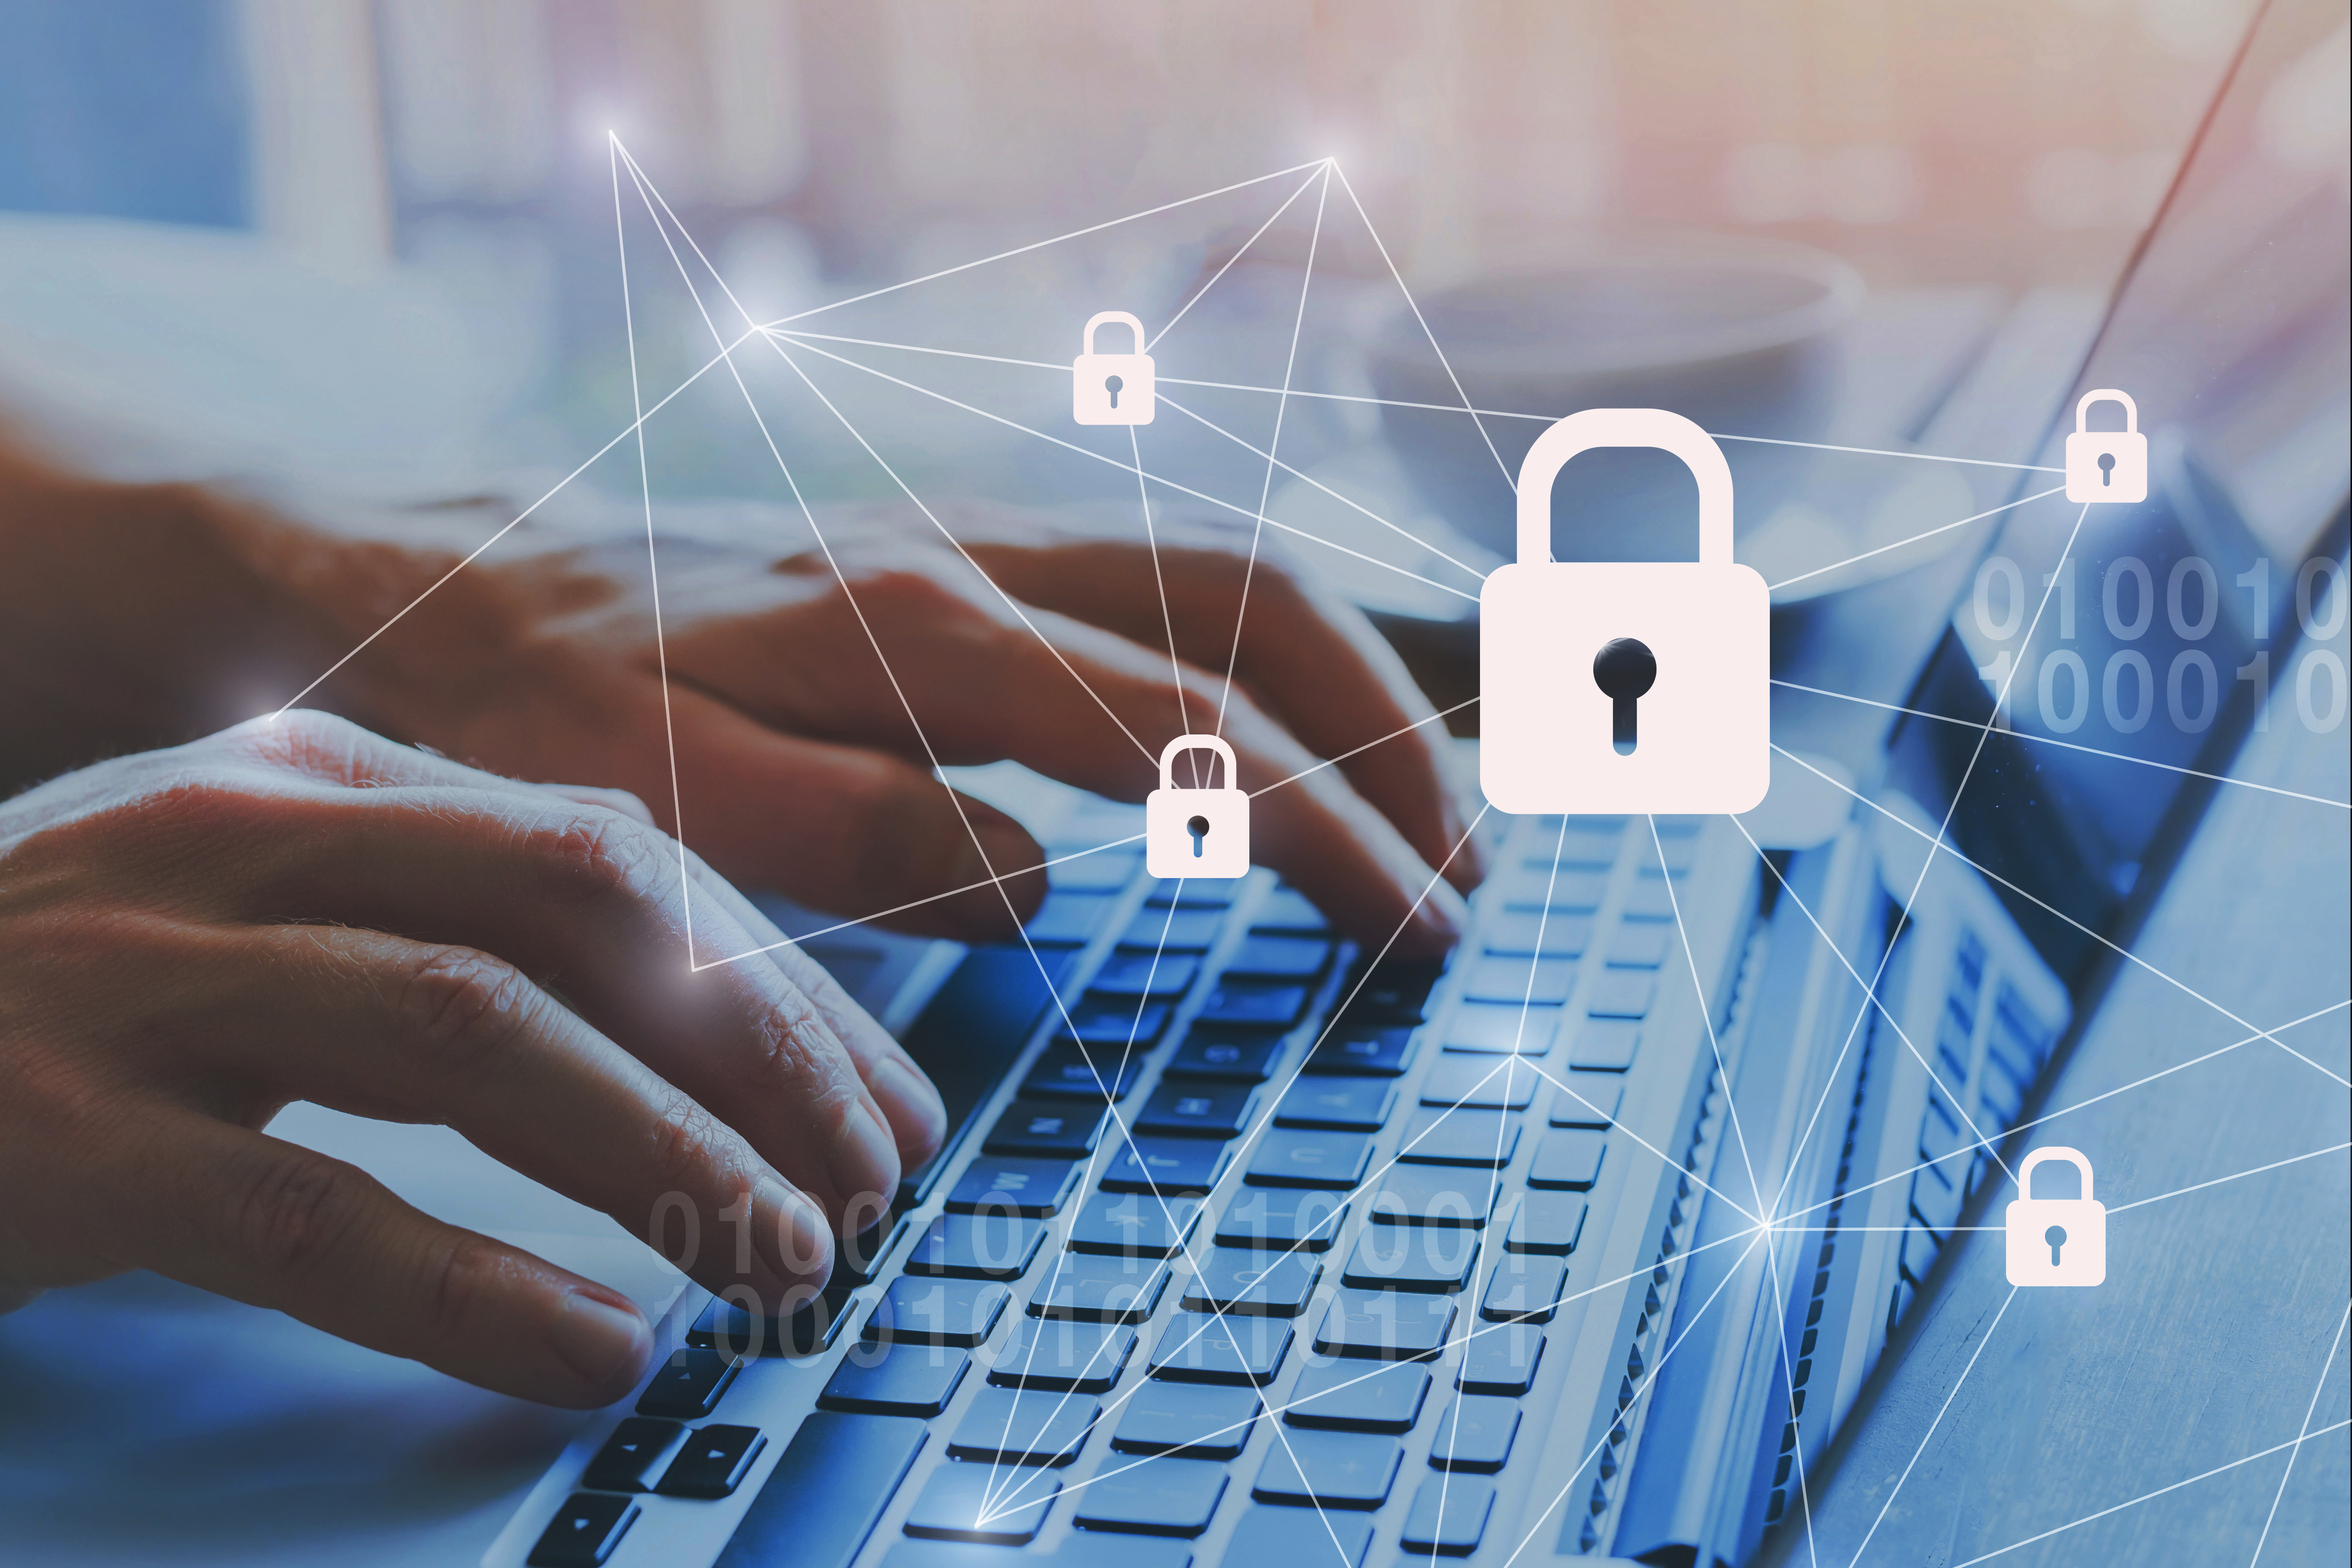 Internet security and data protection